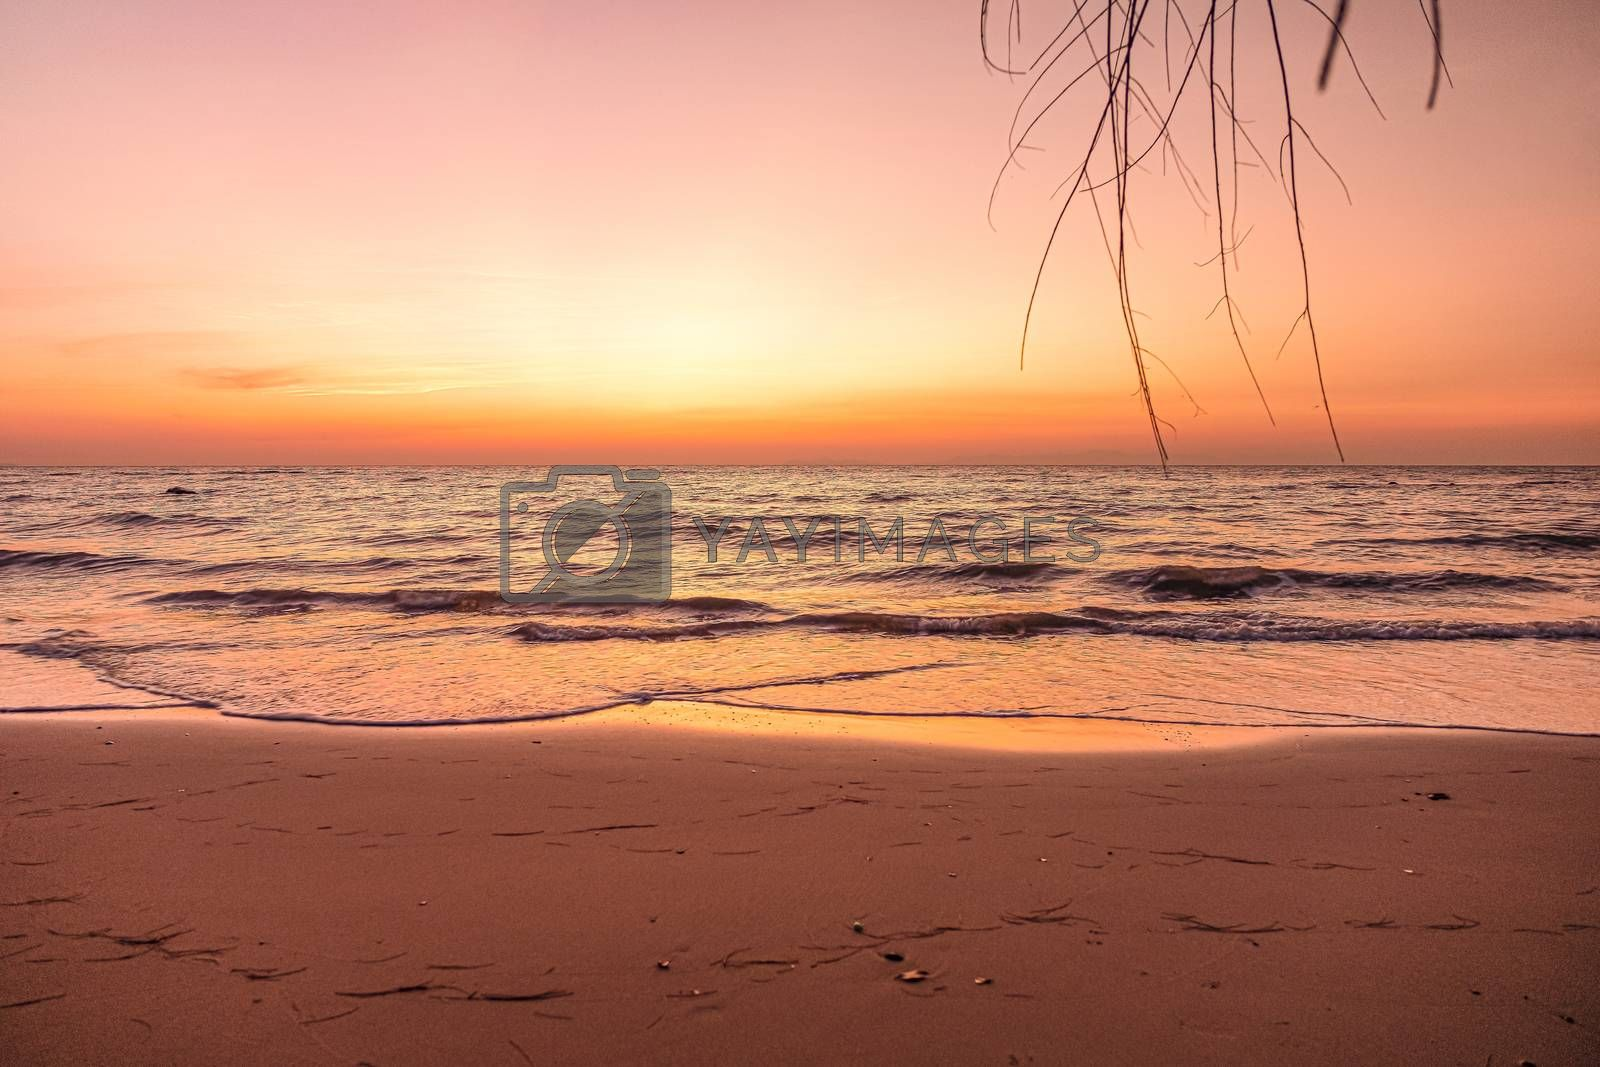 A beautiful display of light in the sky just after sunsetting over Trat beach in Eastern Gulf of Thailand.